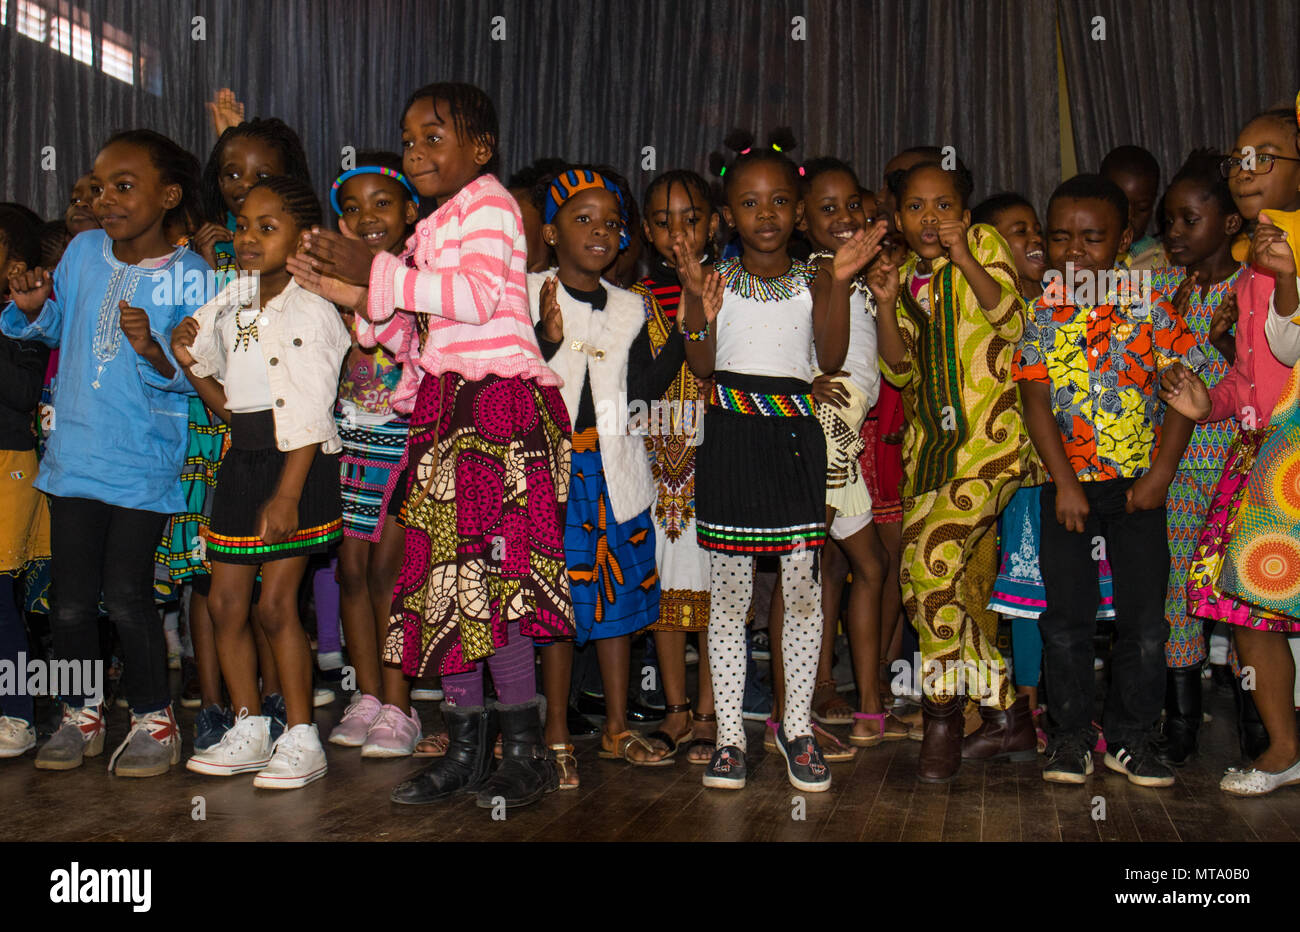 Johannesburg South Africa Unidentified School Children Some In Traditional Dress Celebrate Africa Day Stock Photo Alamy